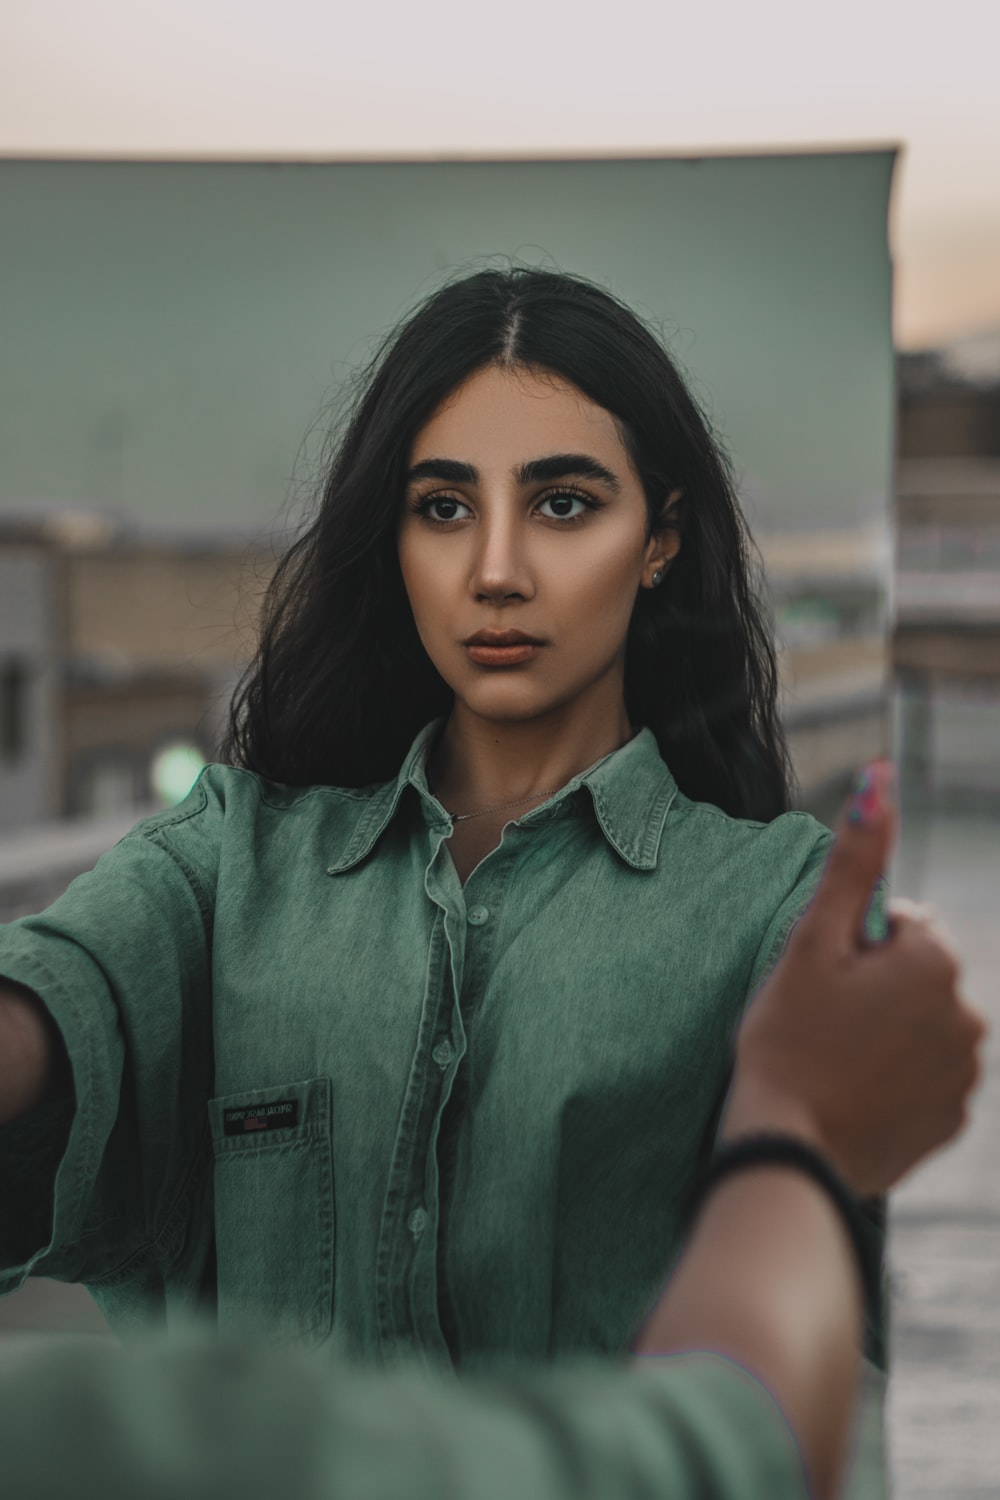 woman in green button up shirt